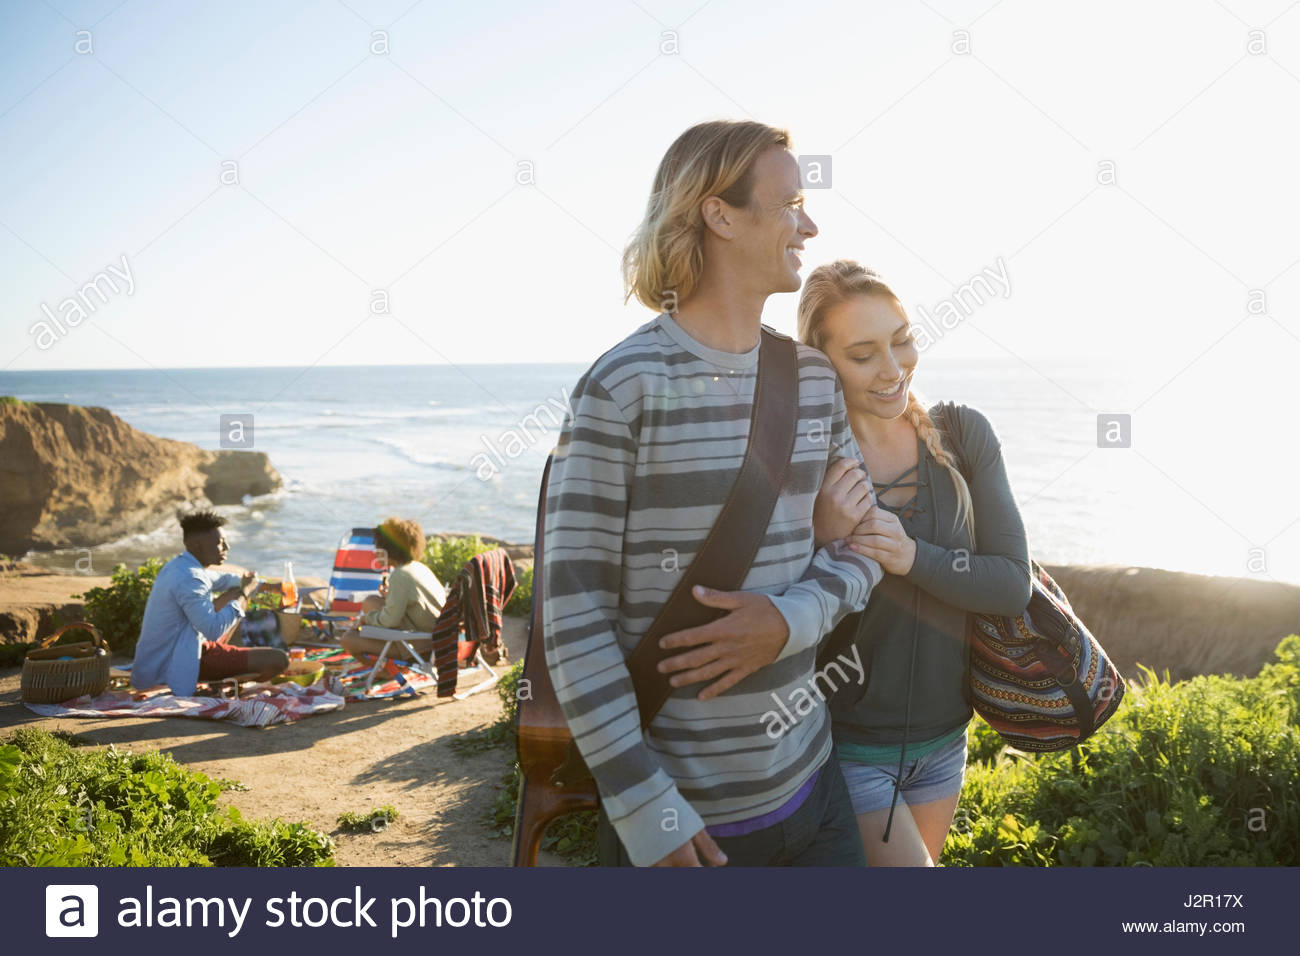 Affectionate young couple walking arm in arm with guitar on sunny beach Stock Photo